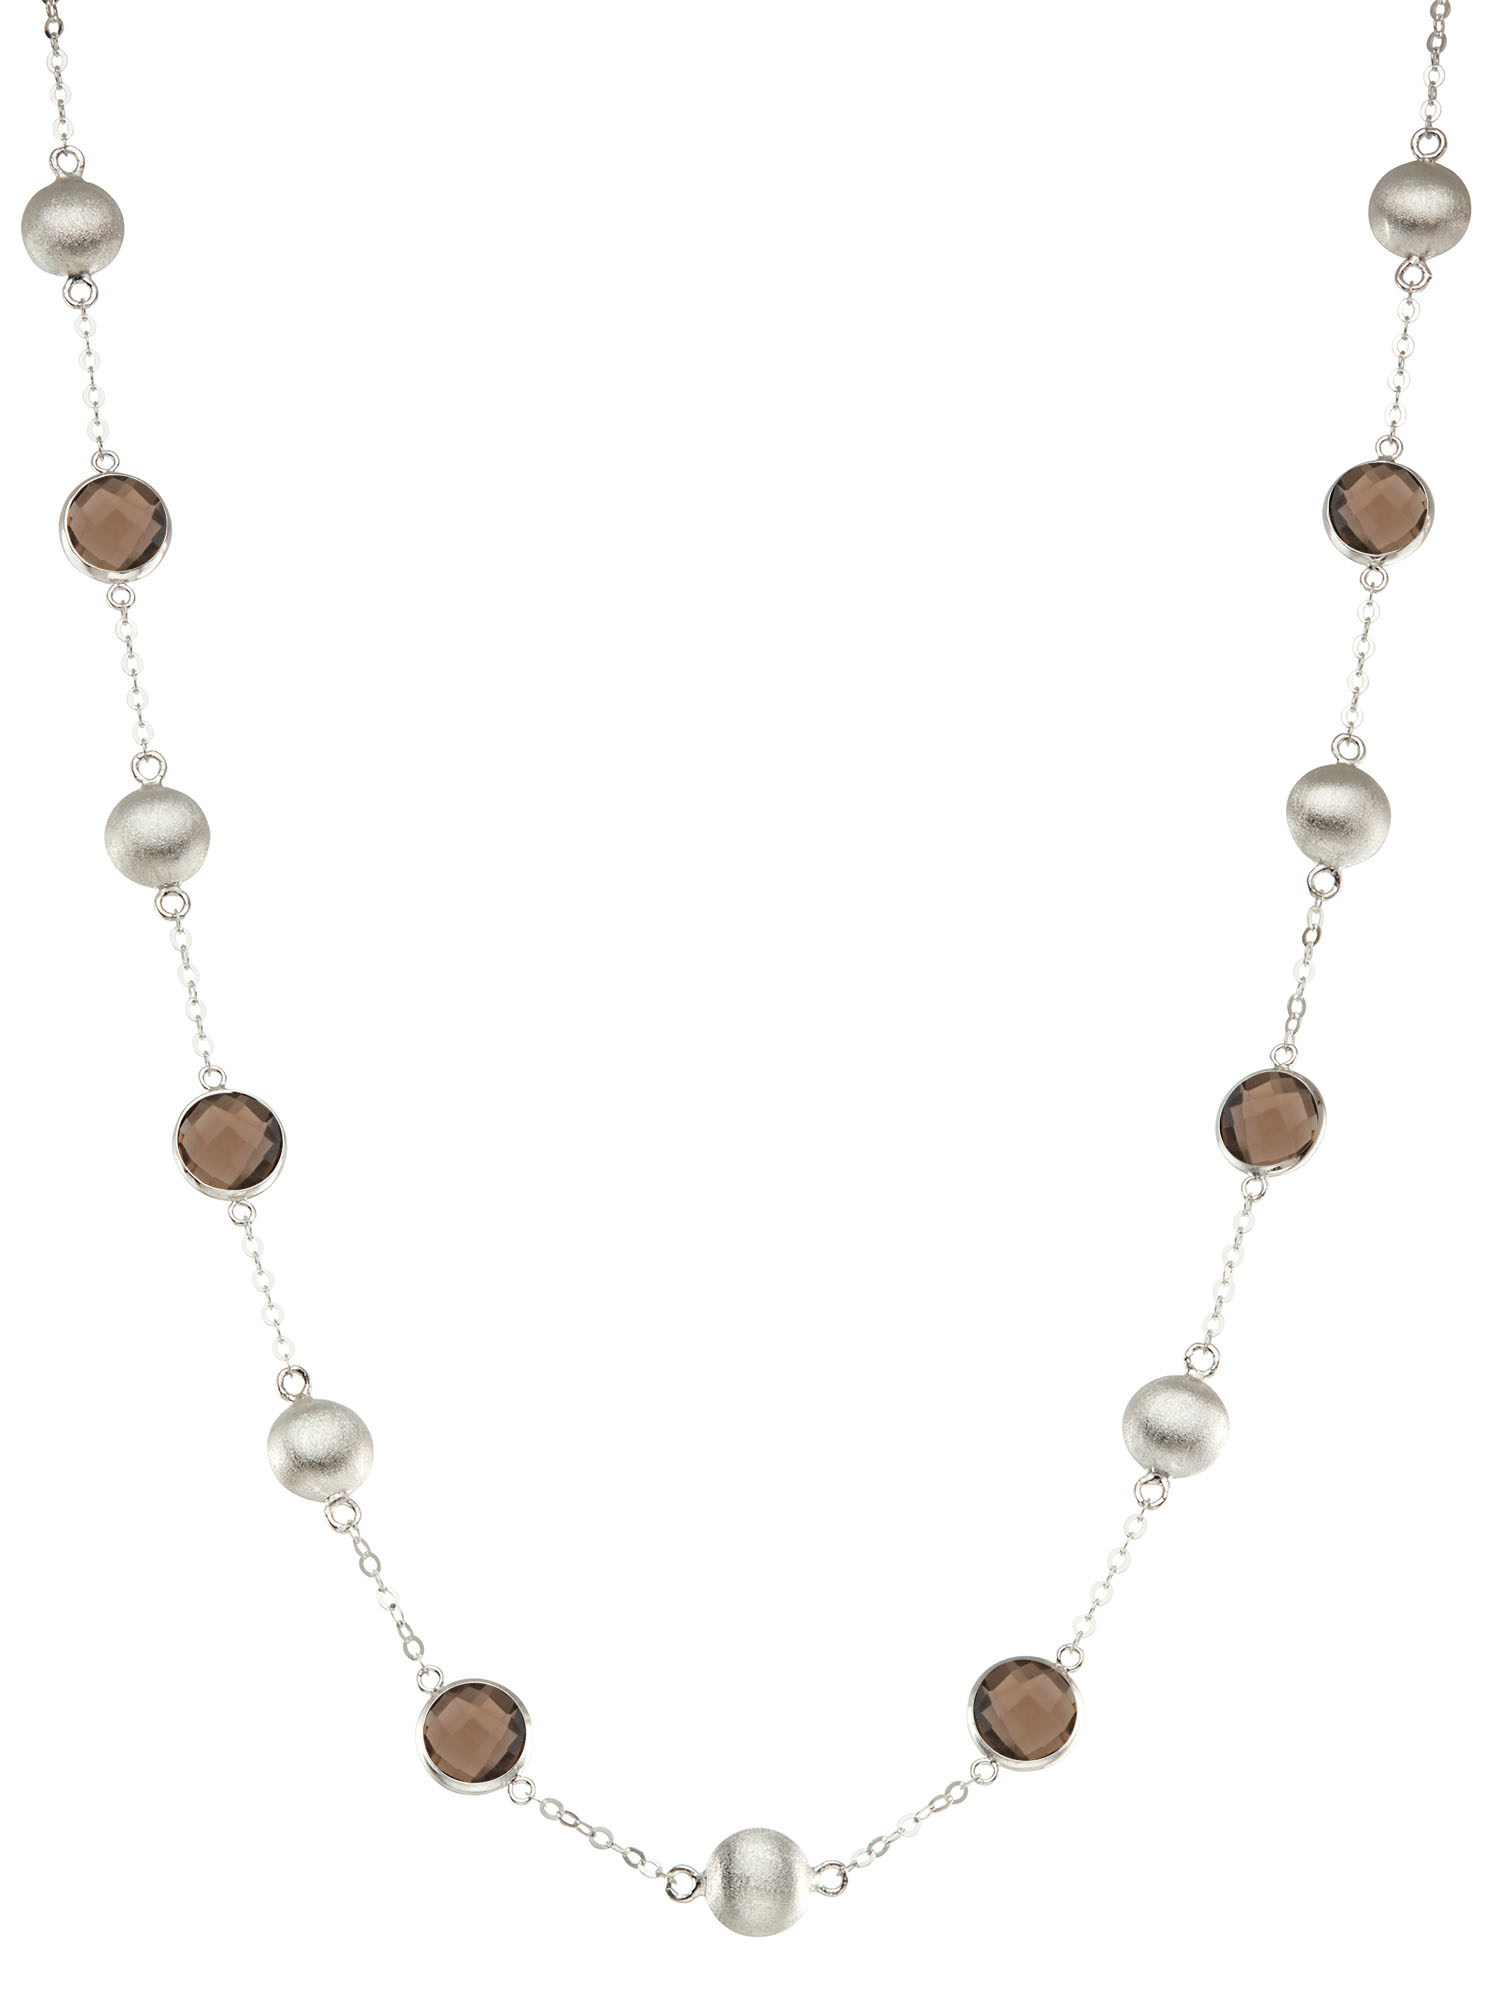 Silver Bead And Bezel Short Necklace With Stations and Round Gemstones by Collection Bijoux